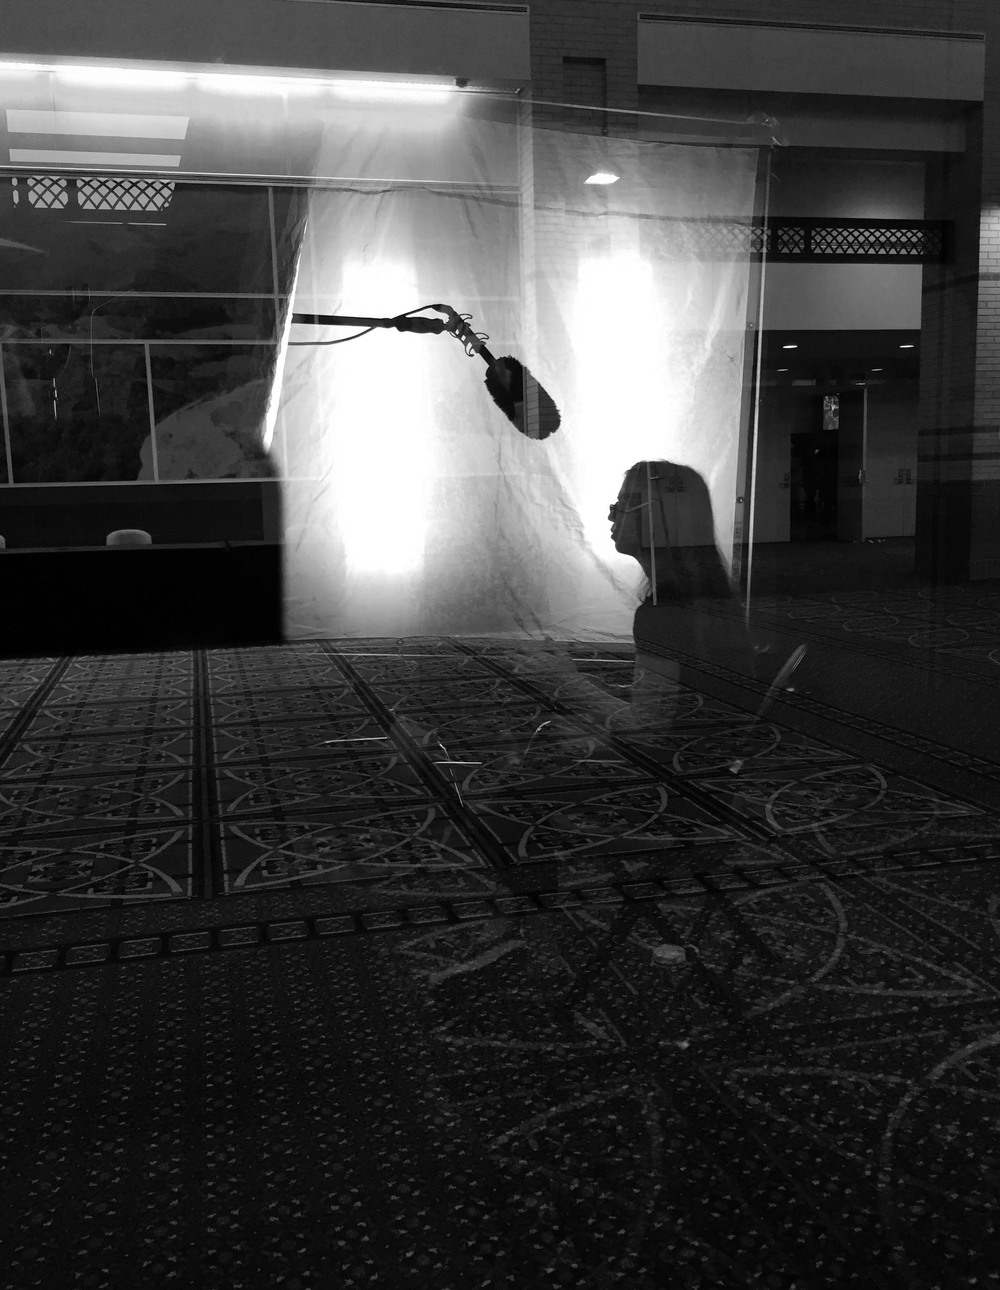 We filmed in a room with glass walls on 3 sides, providing this reflection